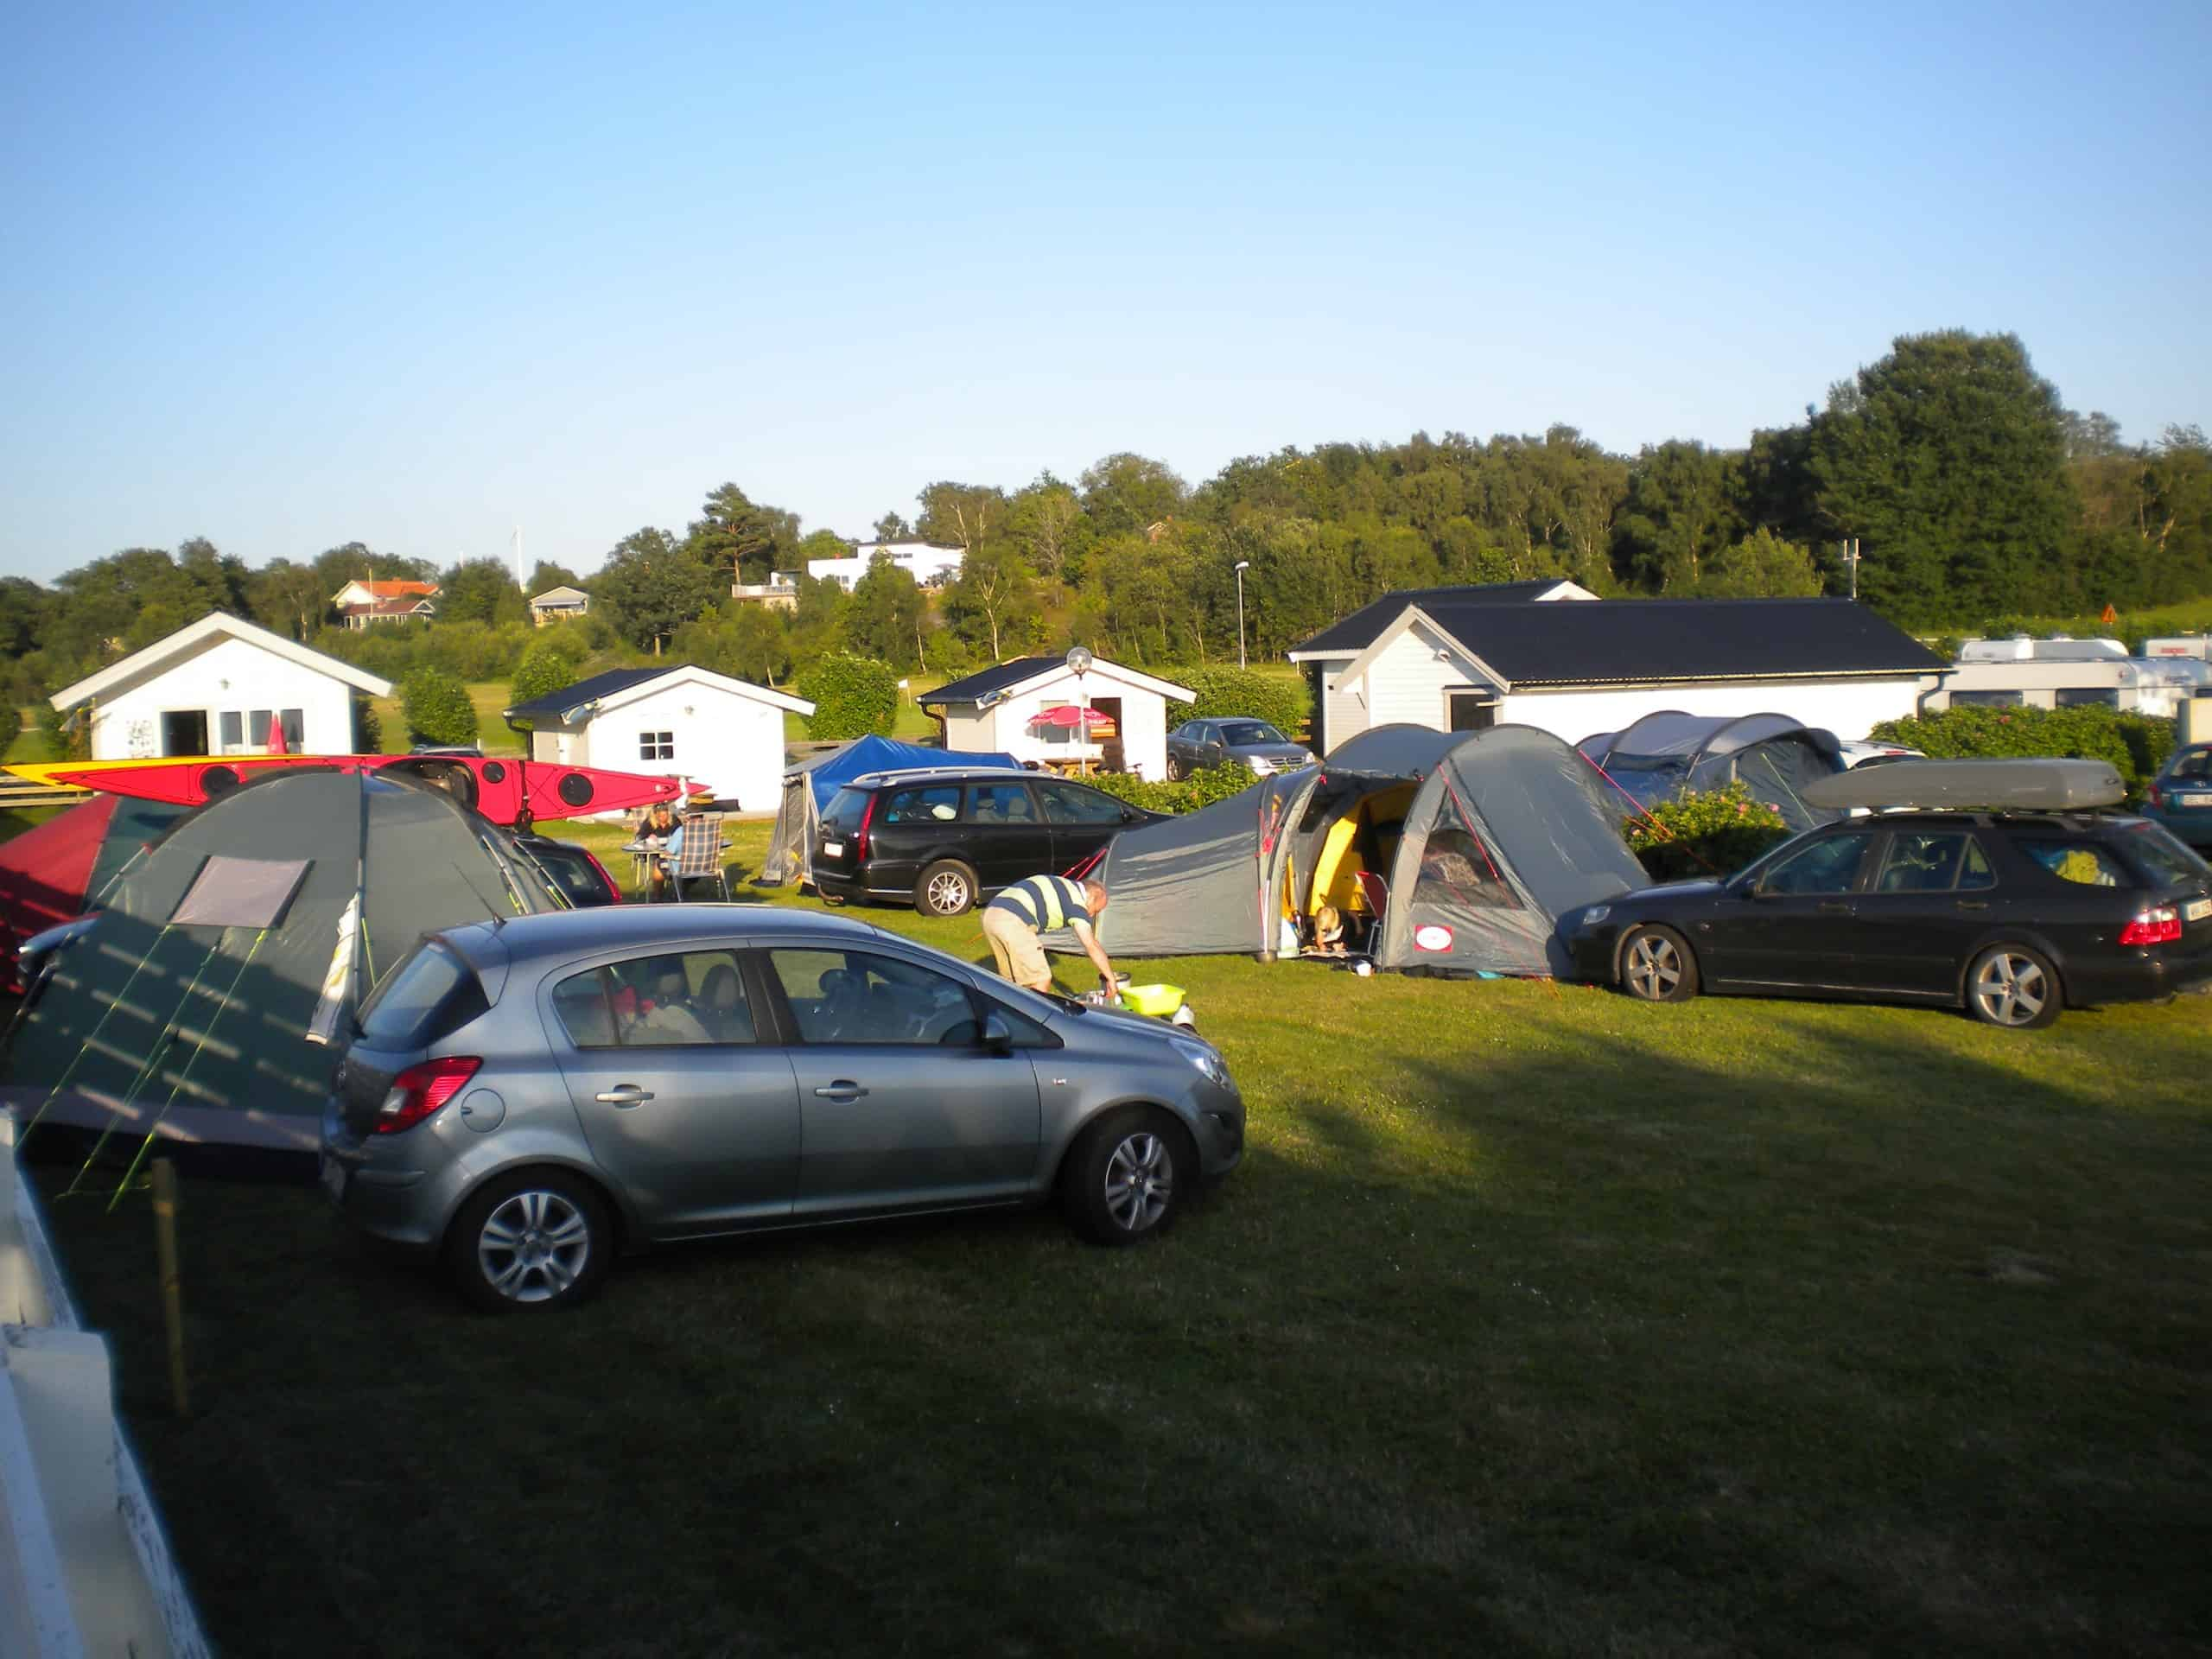 Tent pitch